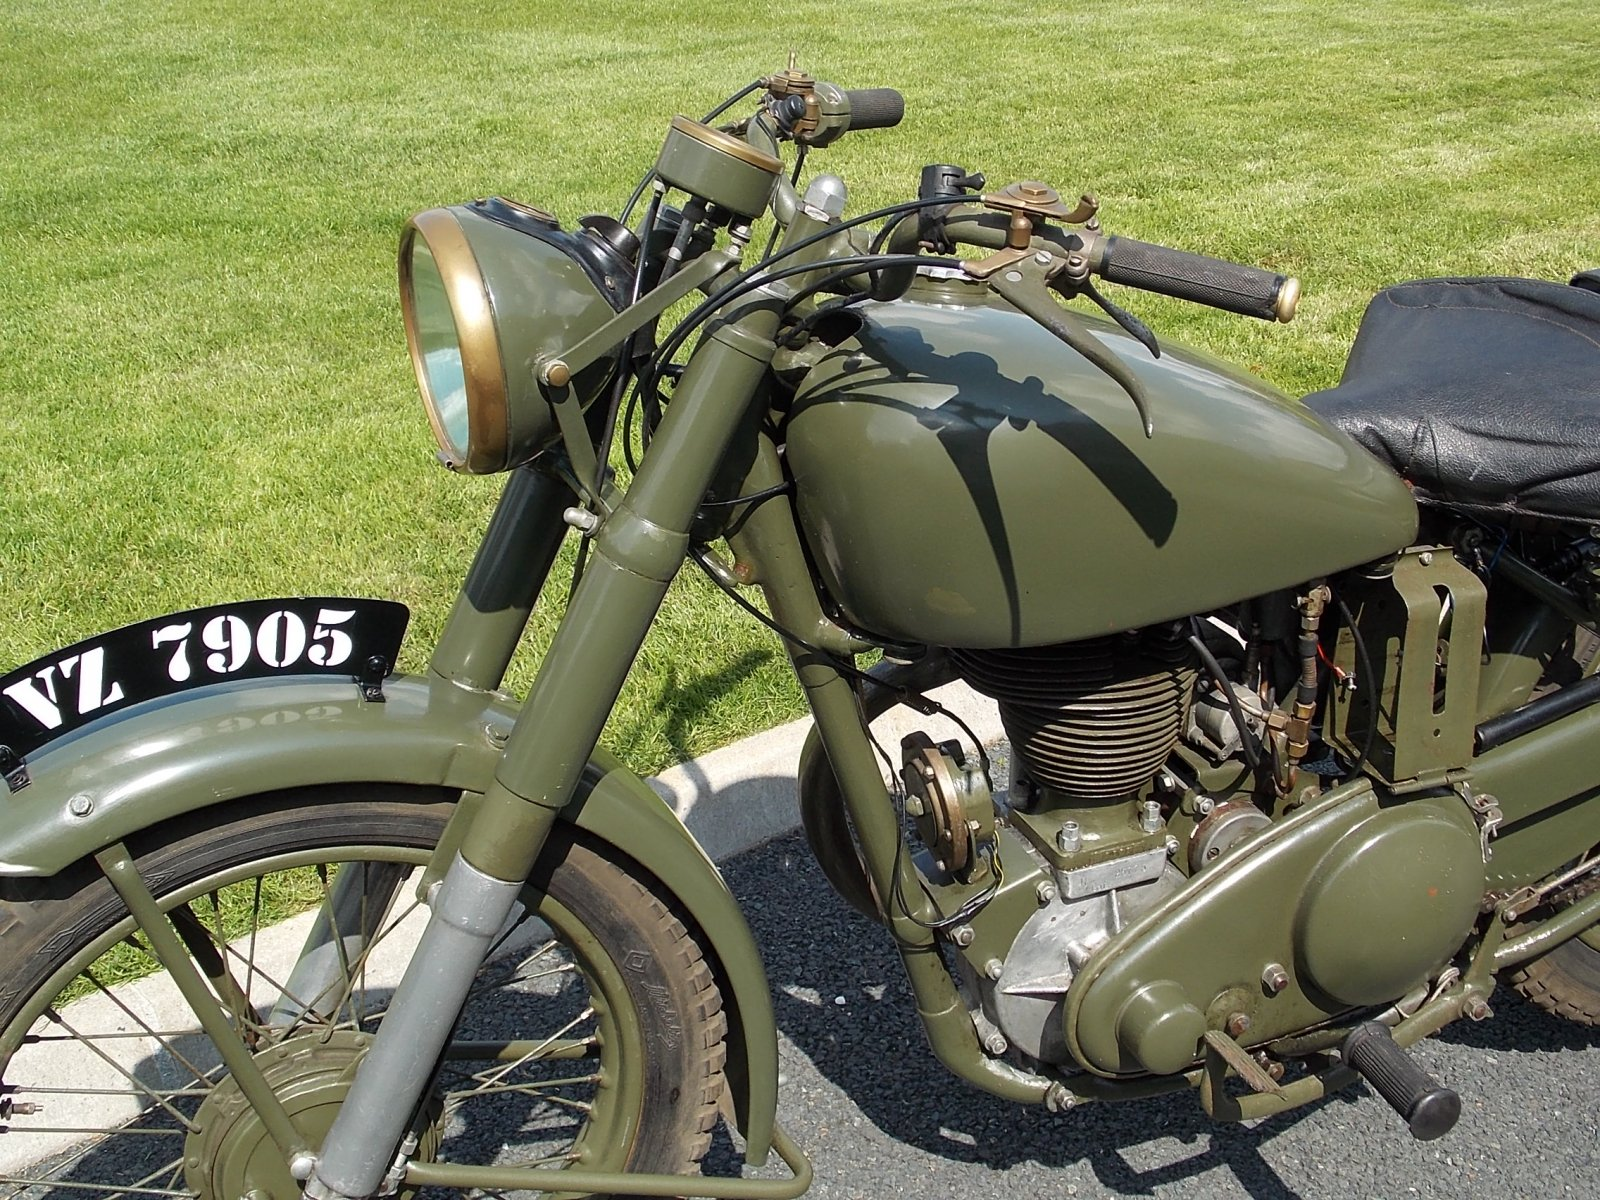 1942-Matchless-G3L-350cc-picture-3